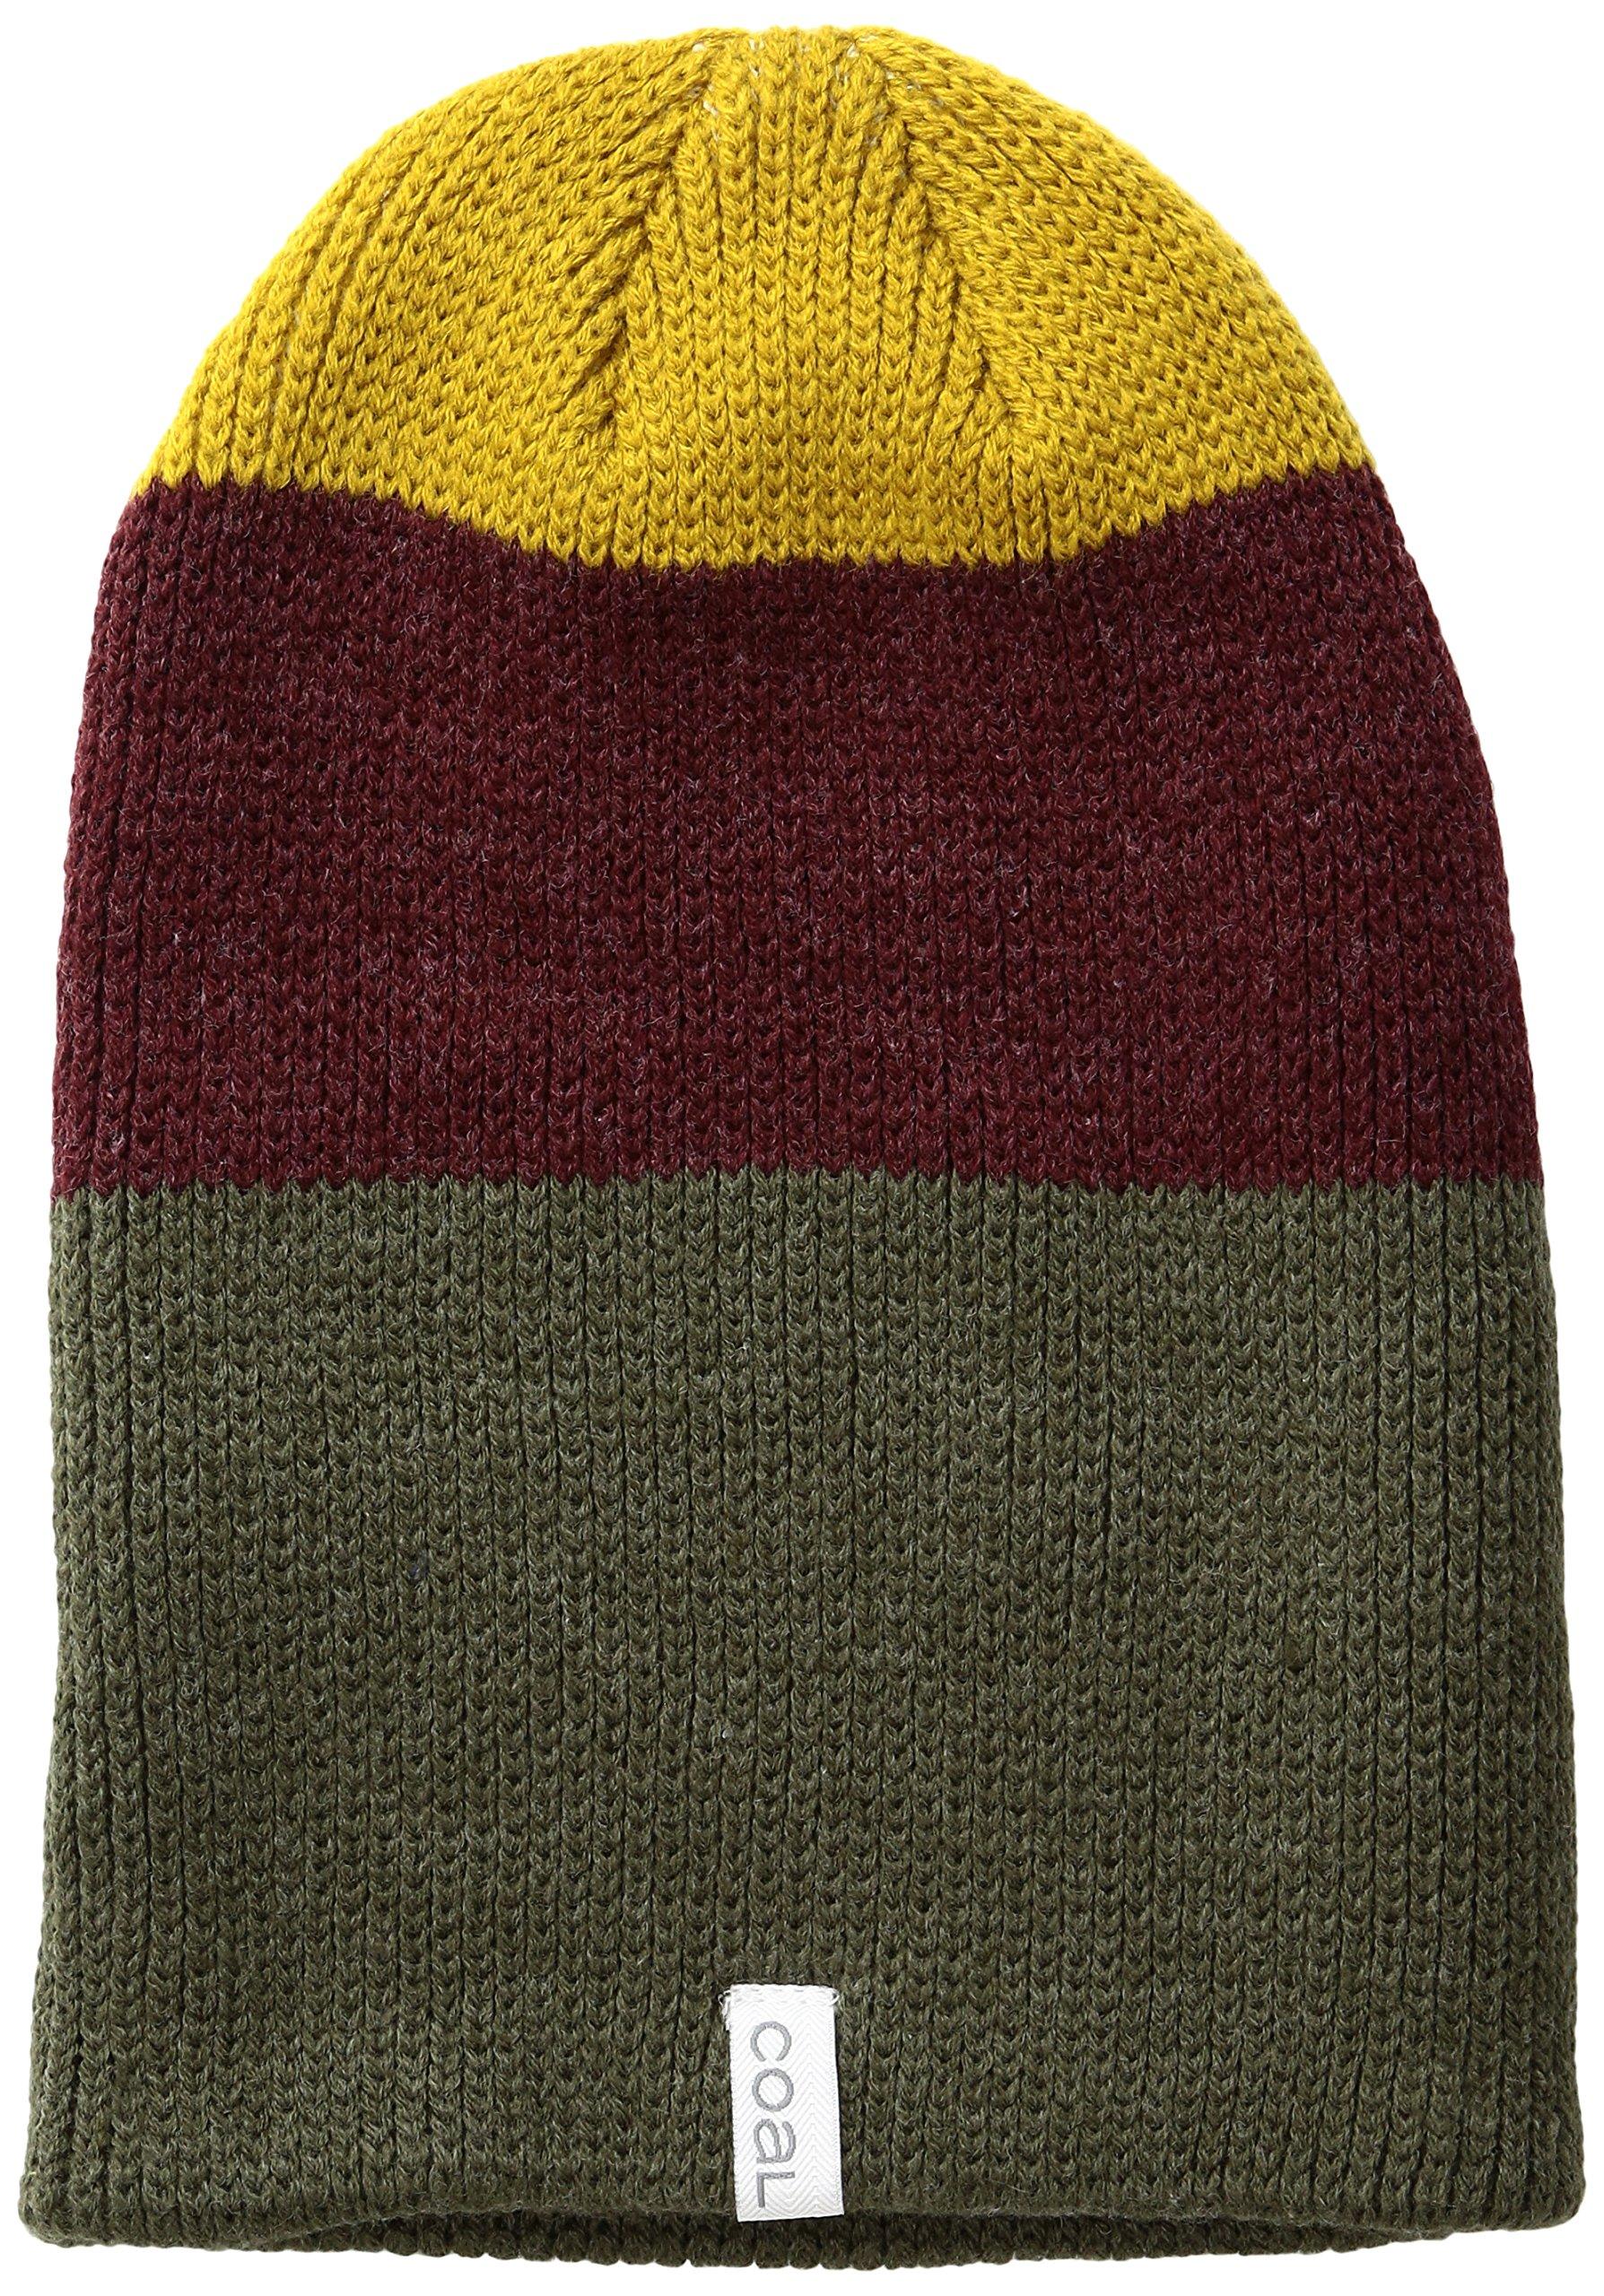 Coal Men's The Frena Solid Fine Knit Beanie Hat, Heather Olive, One Size